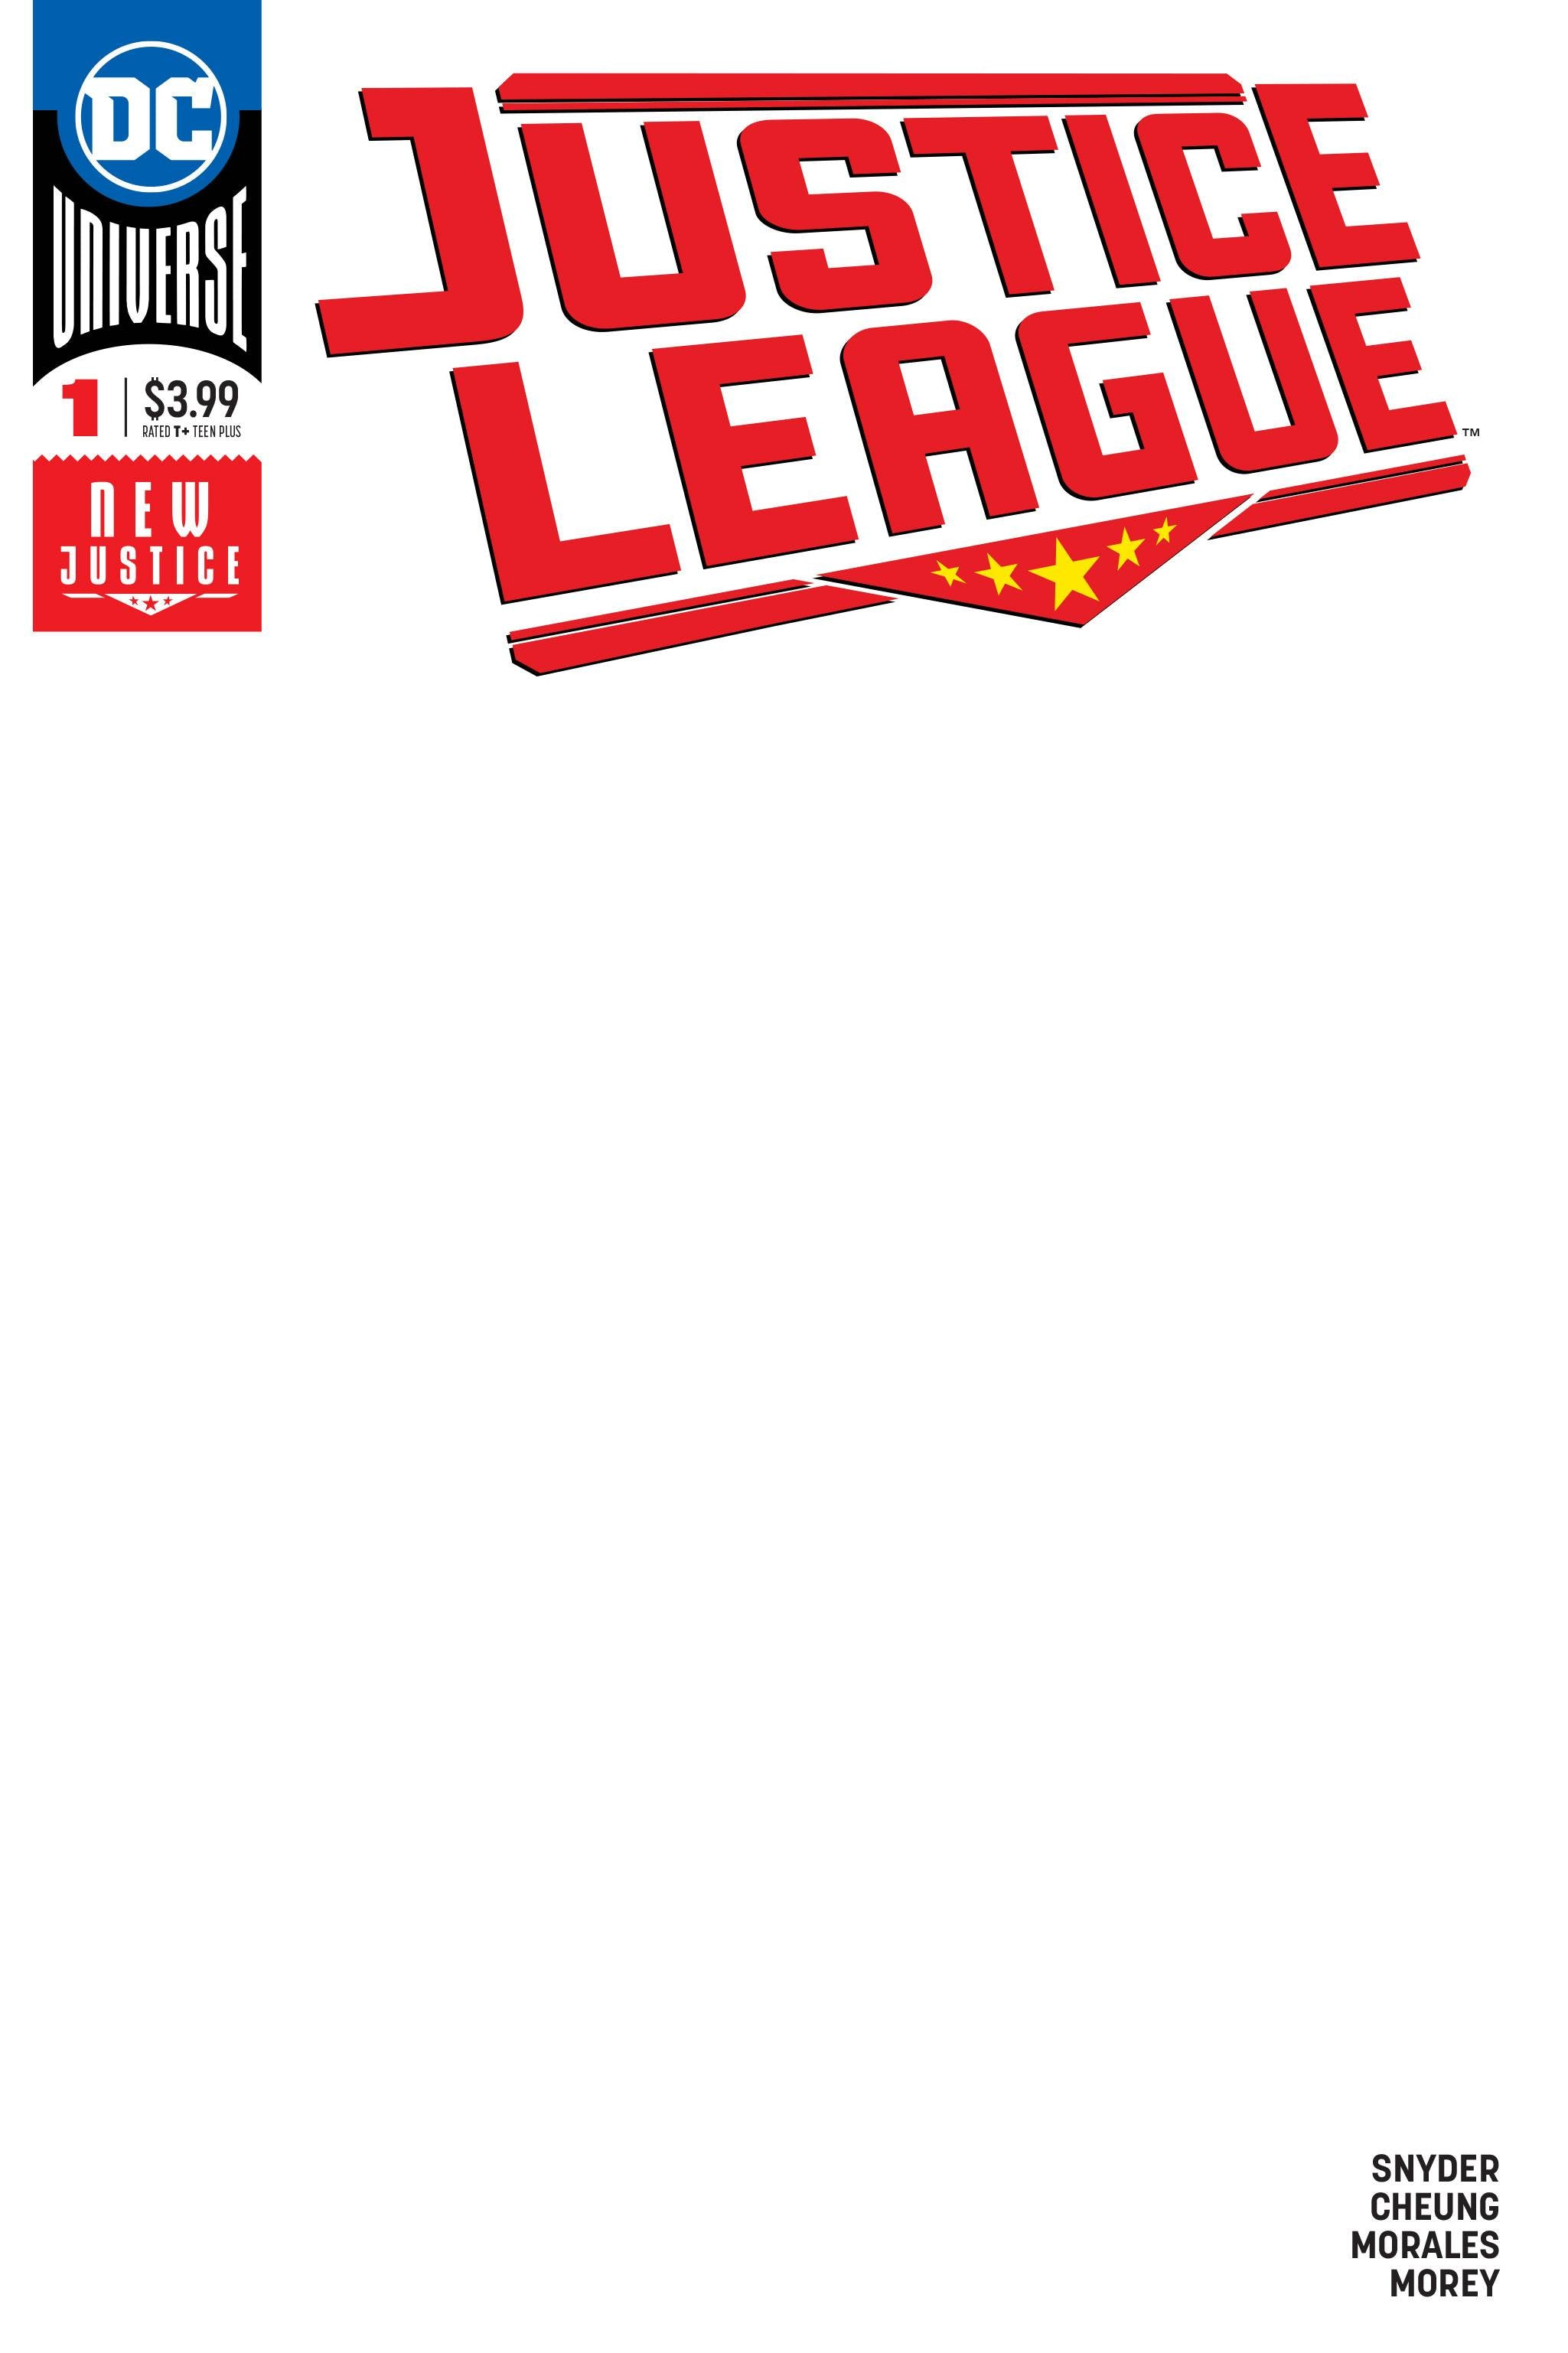 06/06/2018 JUSTICE LEAGUE #1 BLANK VARIANT